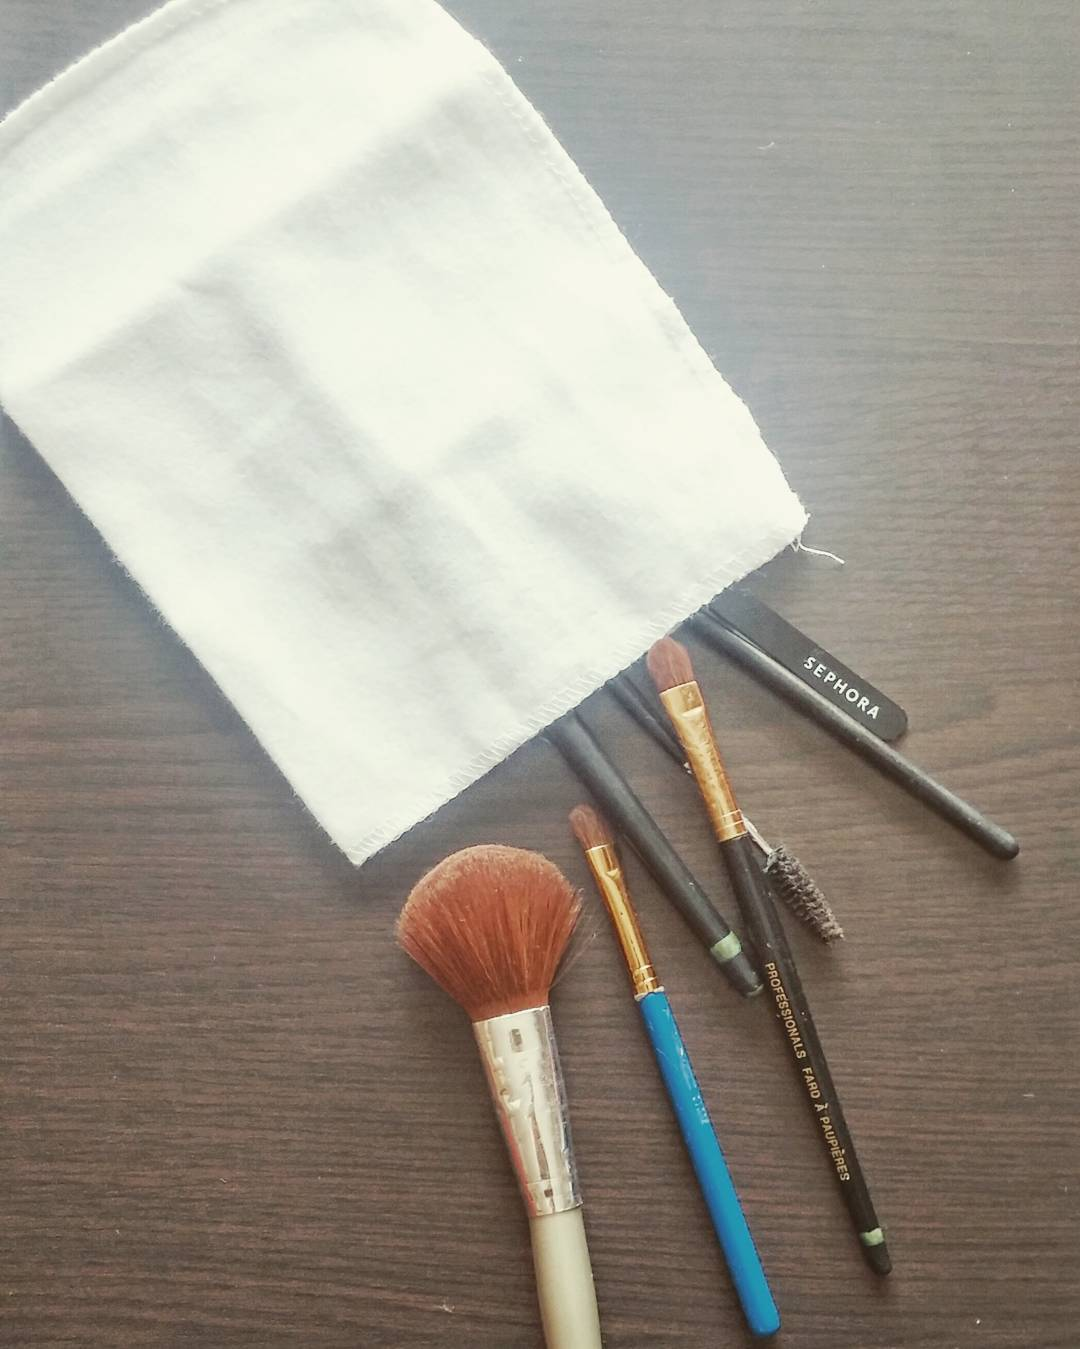 #TravelBeauty tip: a complimentary shoeshine pouch turns into an ideal dirty makeup brush bag!